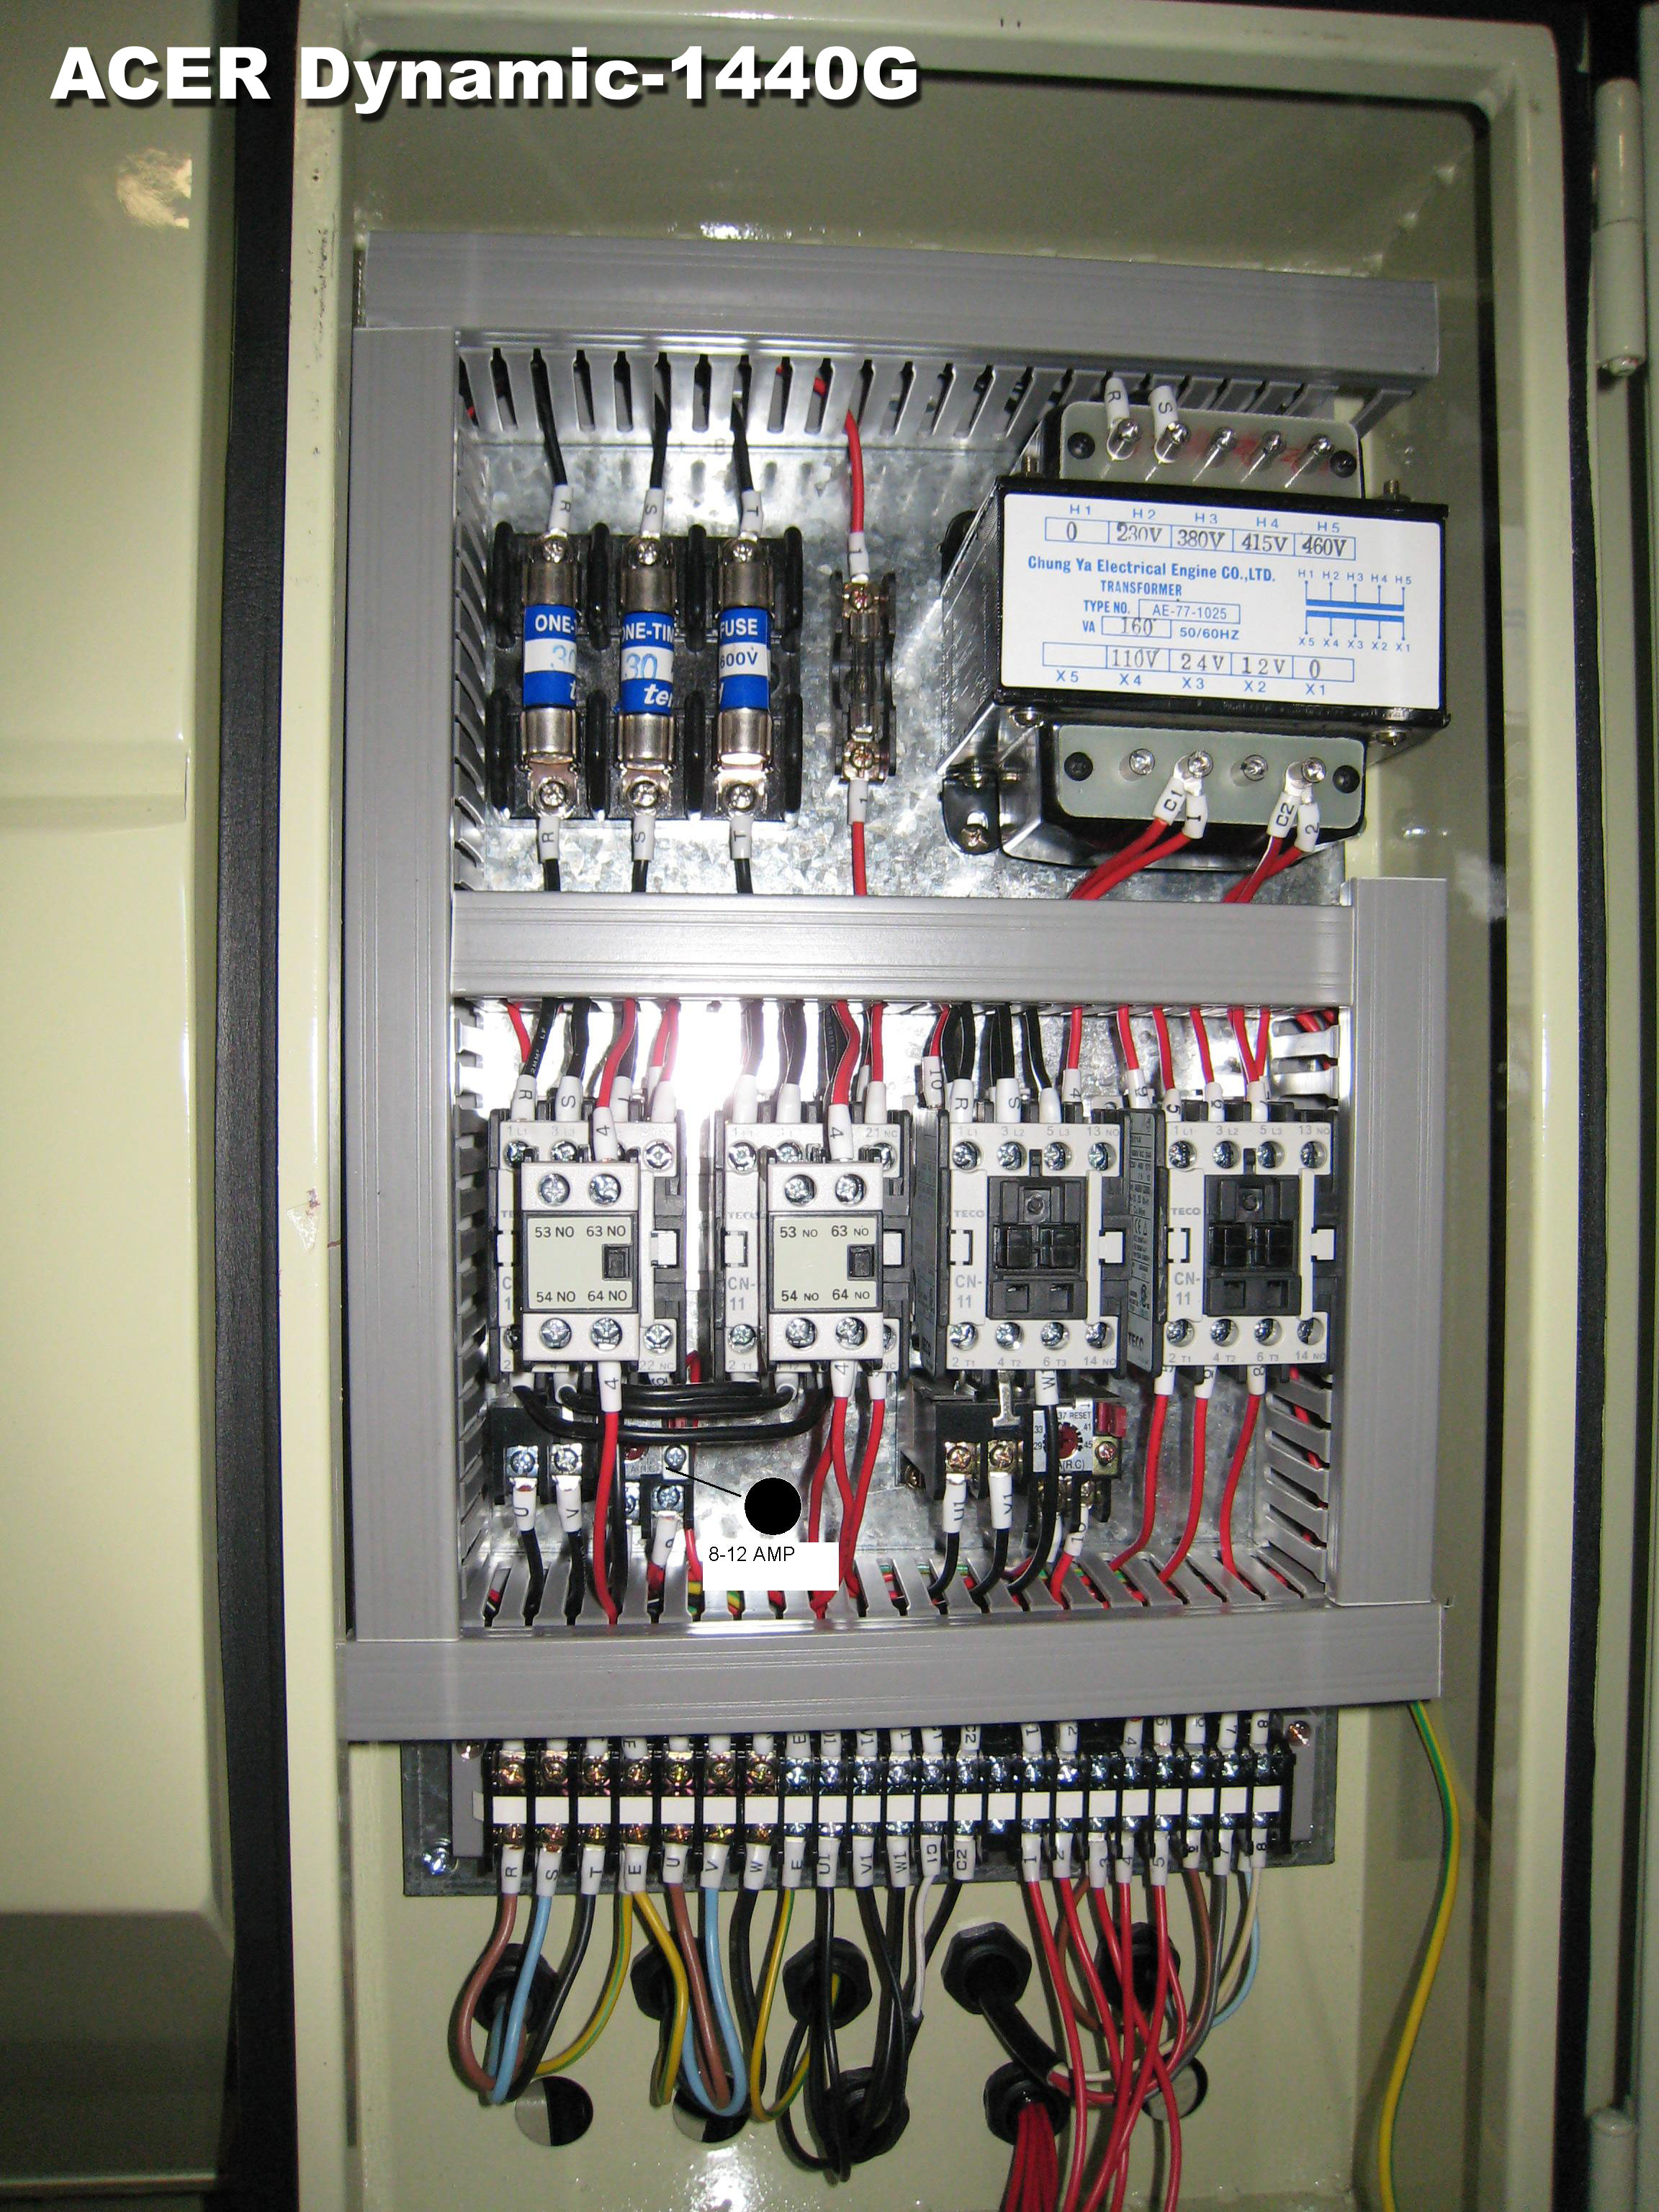 El Wddyn G on Control Panel Wiring